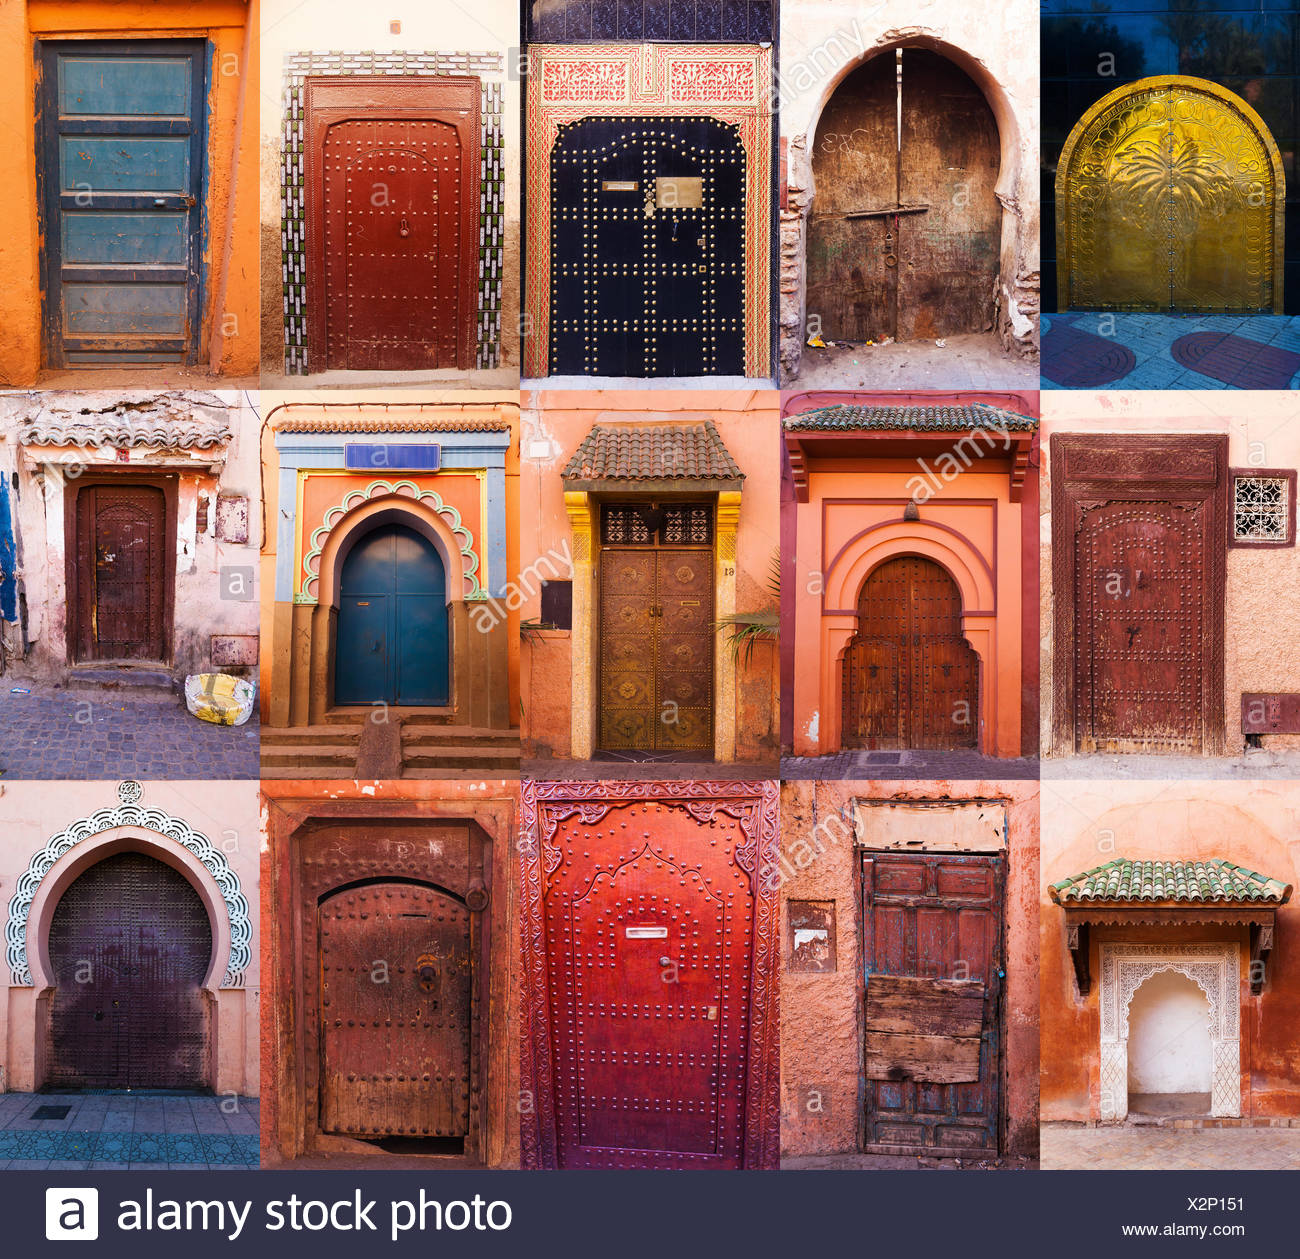 Collage of old doors from Marrakesh - Stock Image